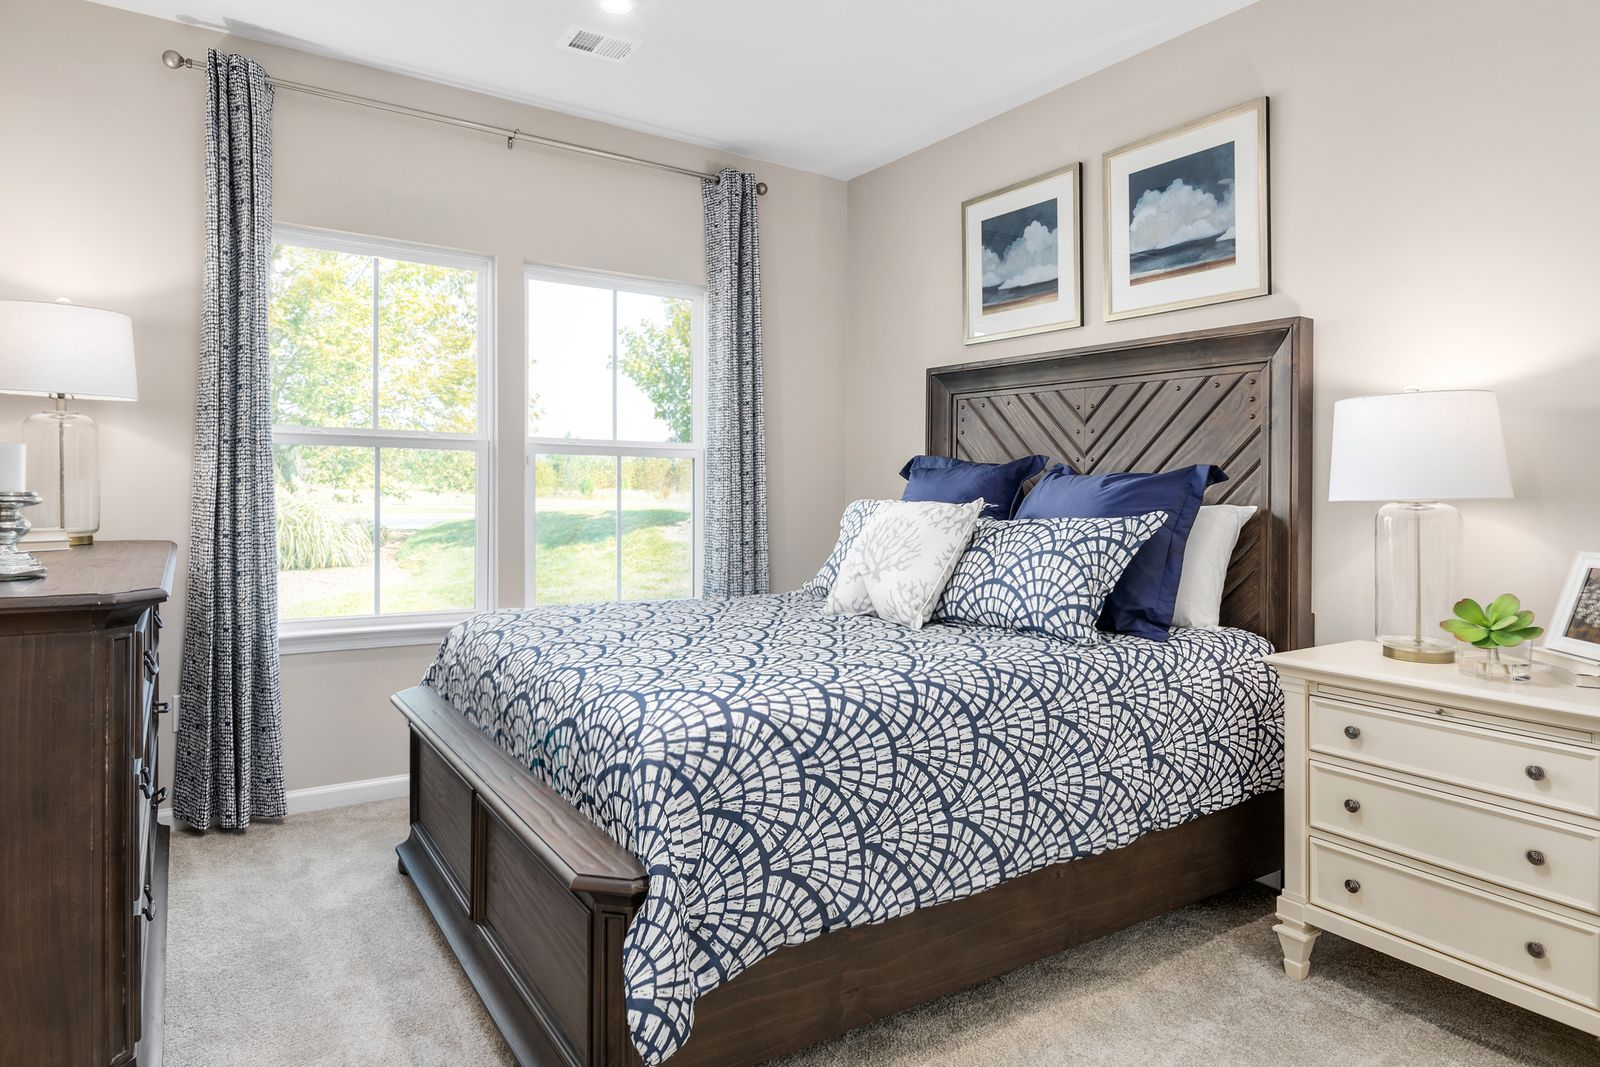 Bedroom featured in the Palladio Ranch By Ryan Homes in Chicago, IL